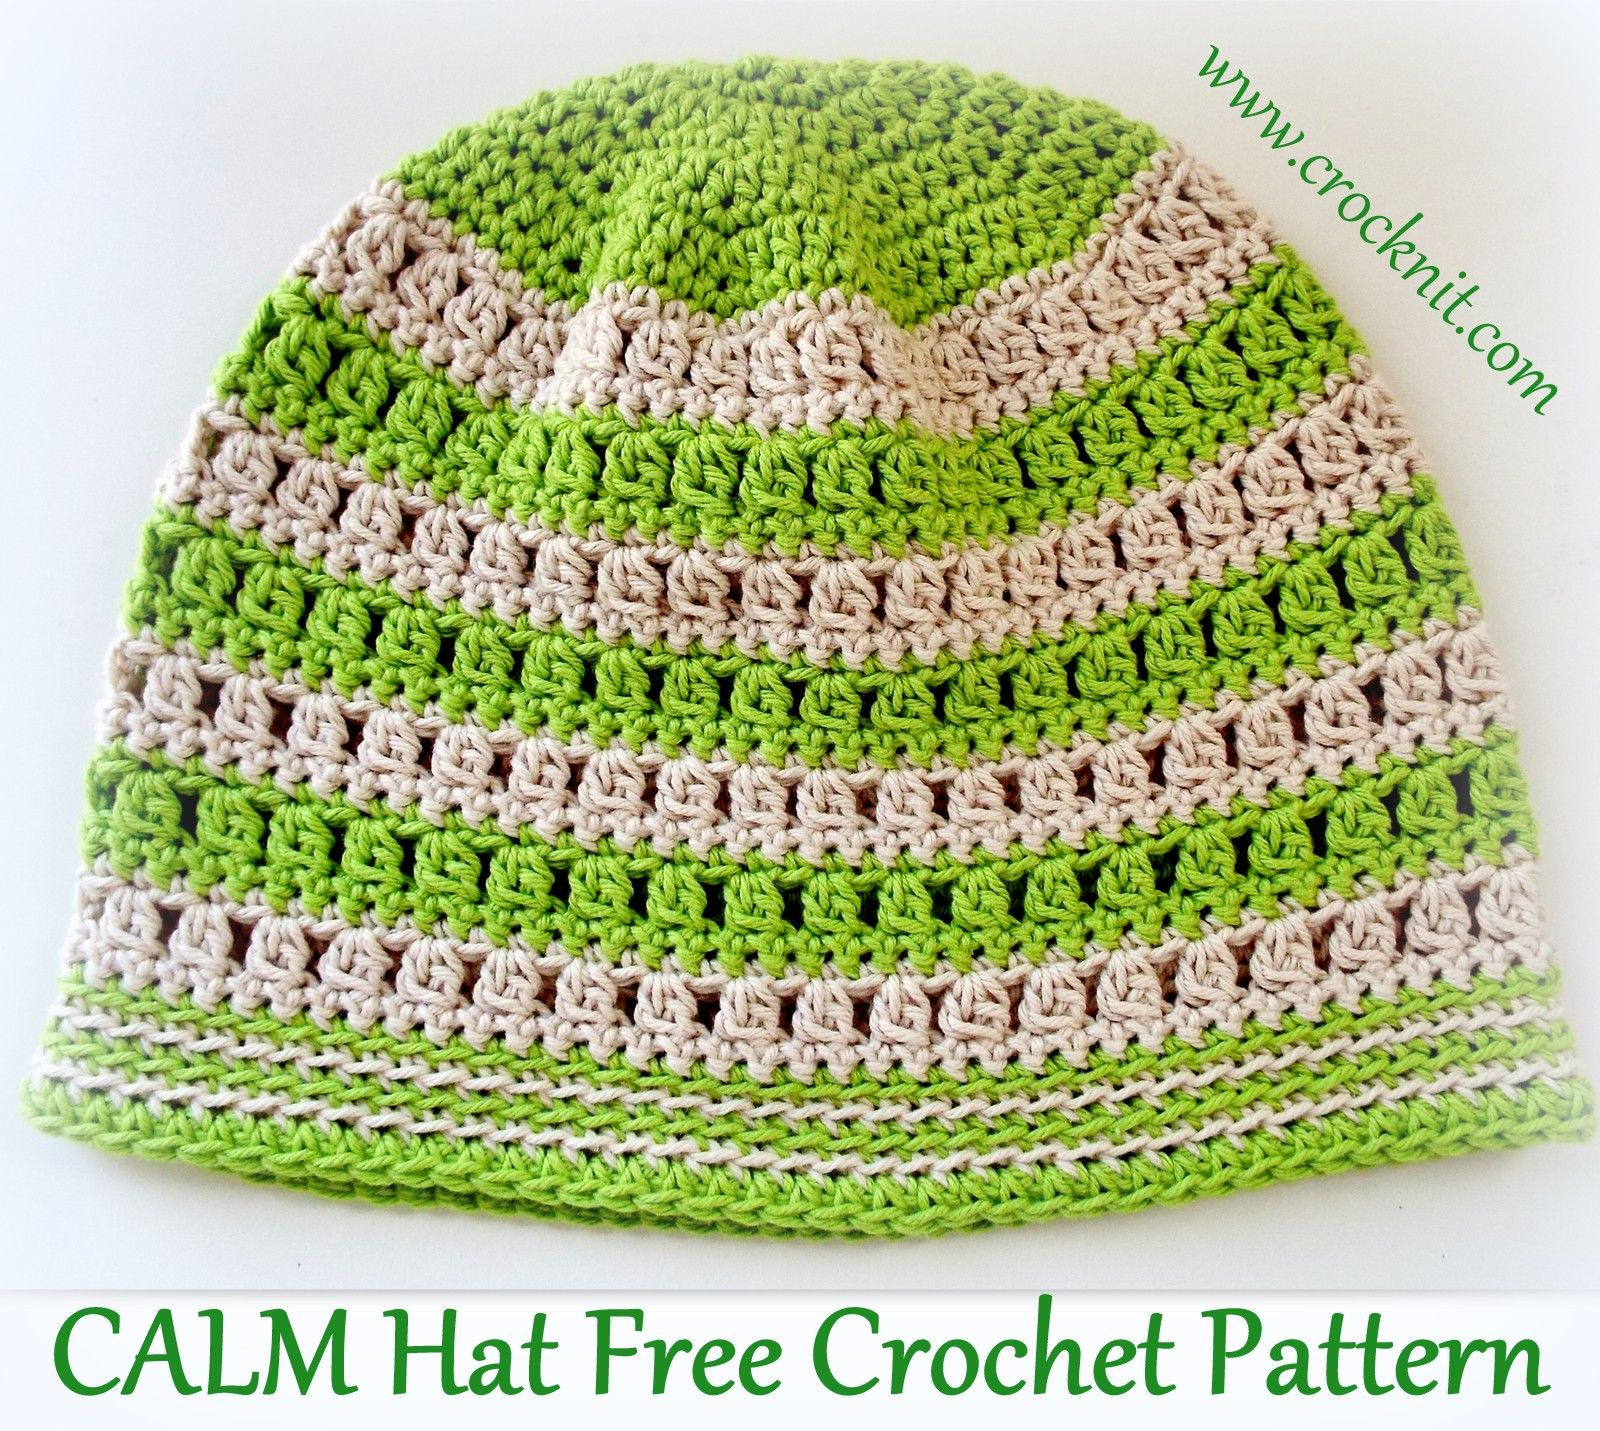 CALM Hat Free Crochet Pattern | Crochet shop | Pinterest | Gorros ...